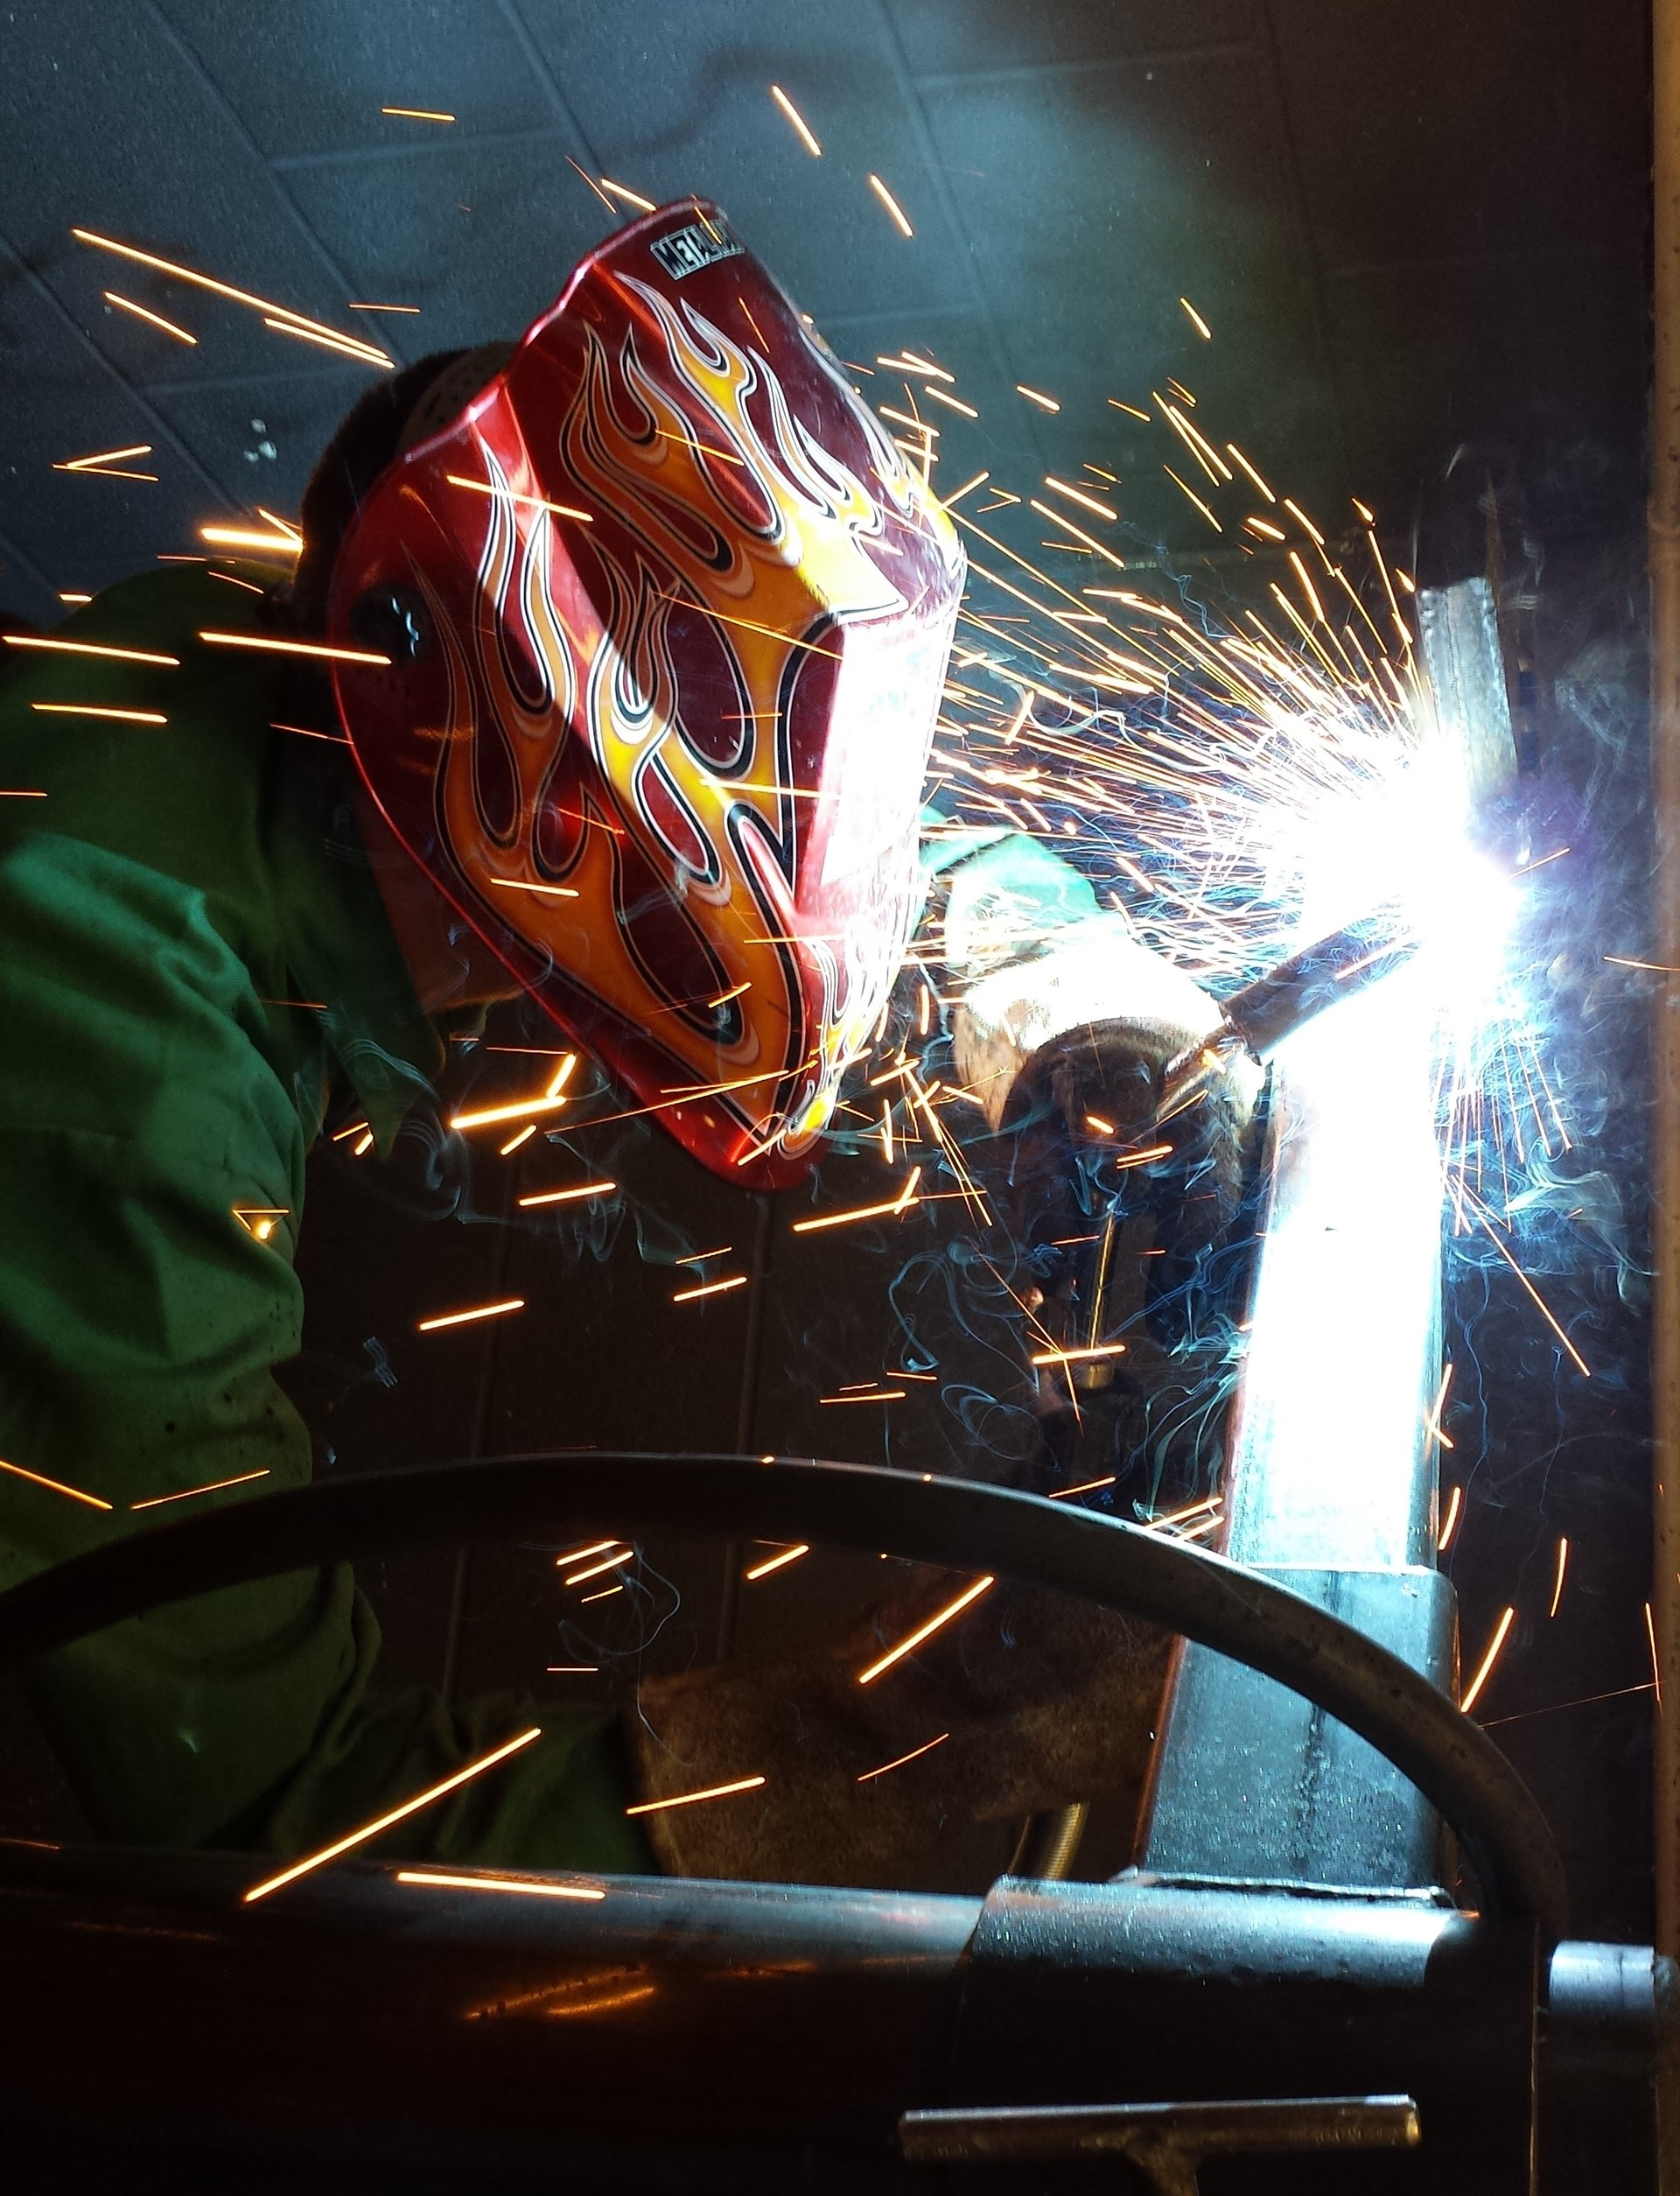 Welder wearing yellow and orange flames helmet and sparks flying